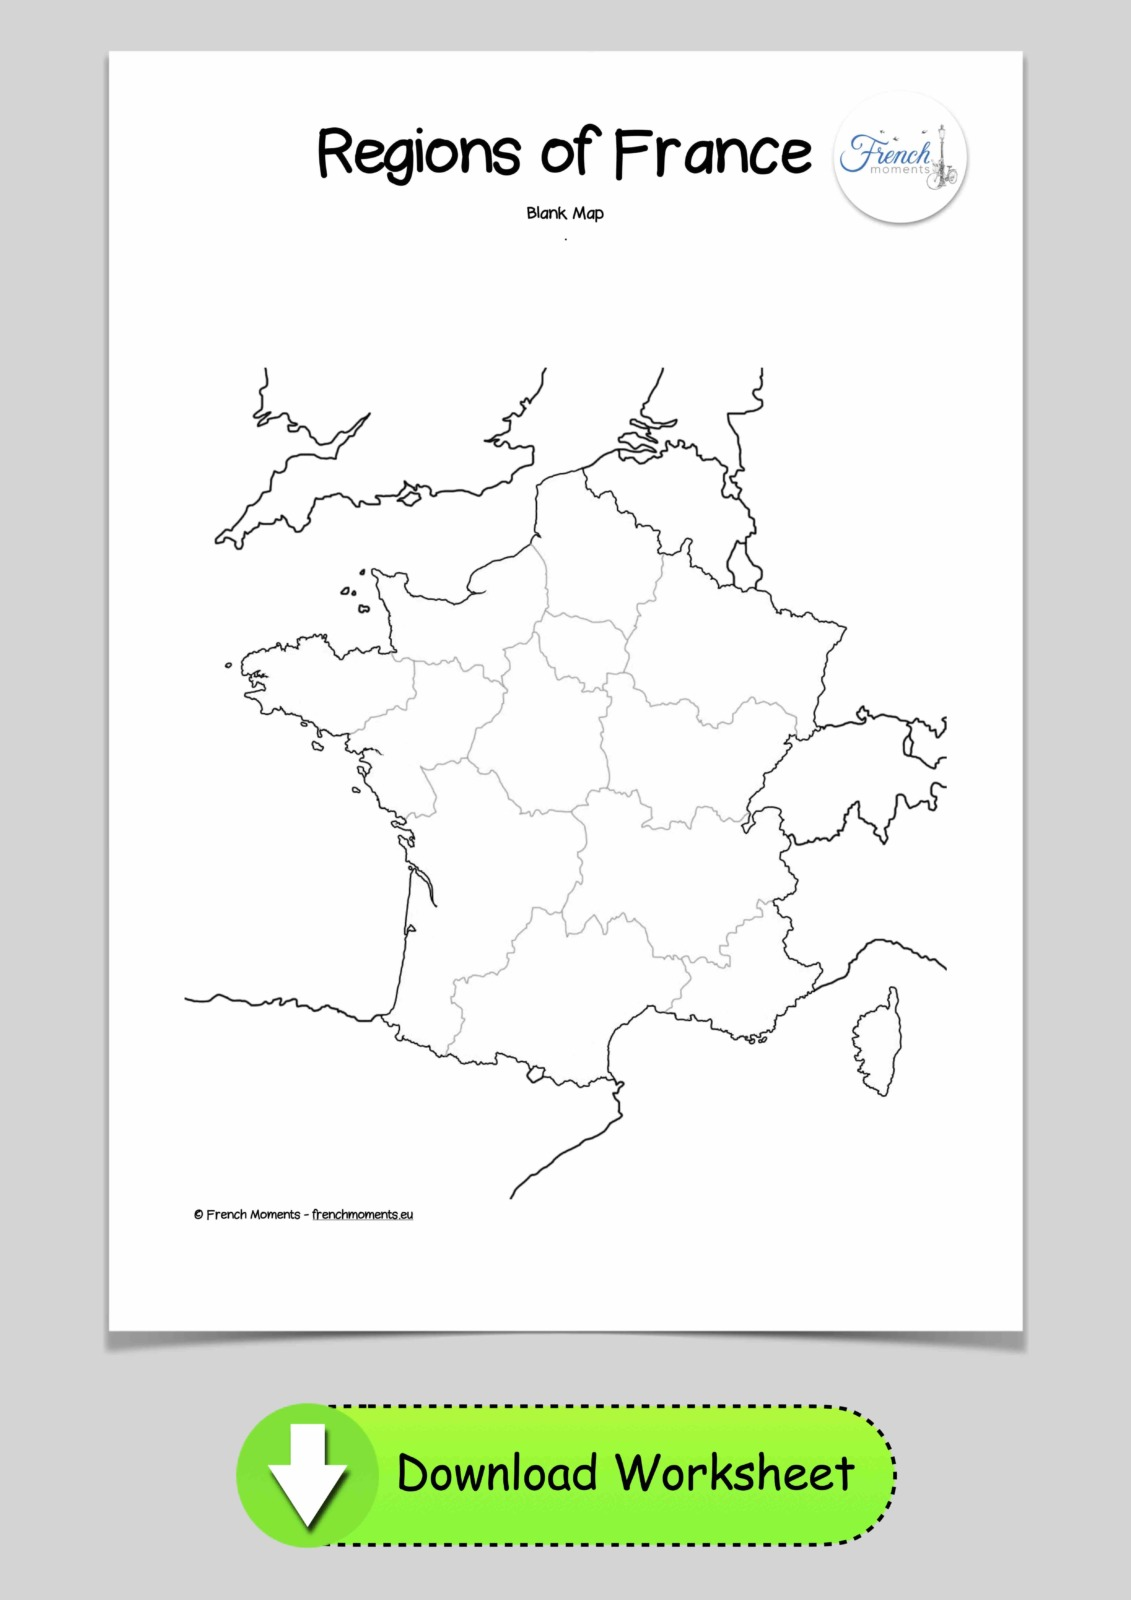 Blank Map of the regions of France © French Moments